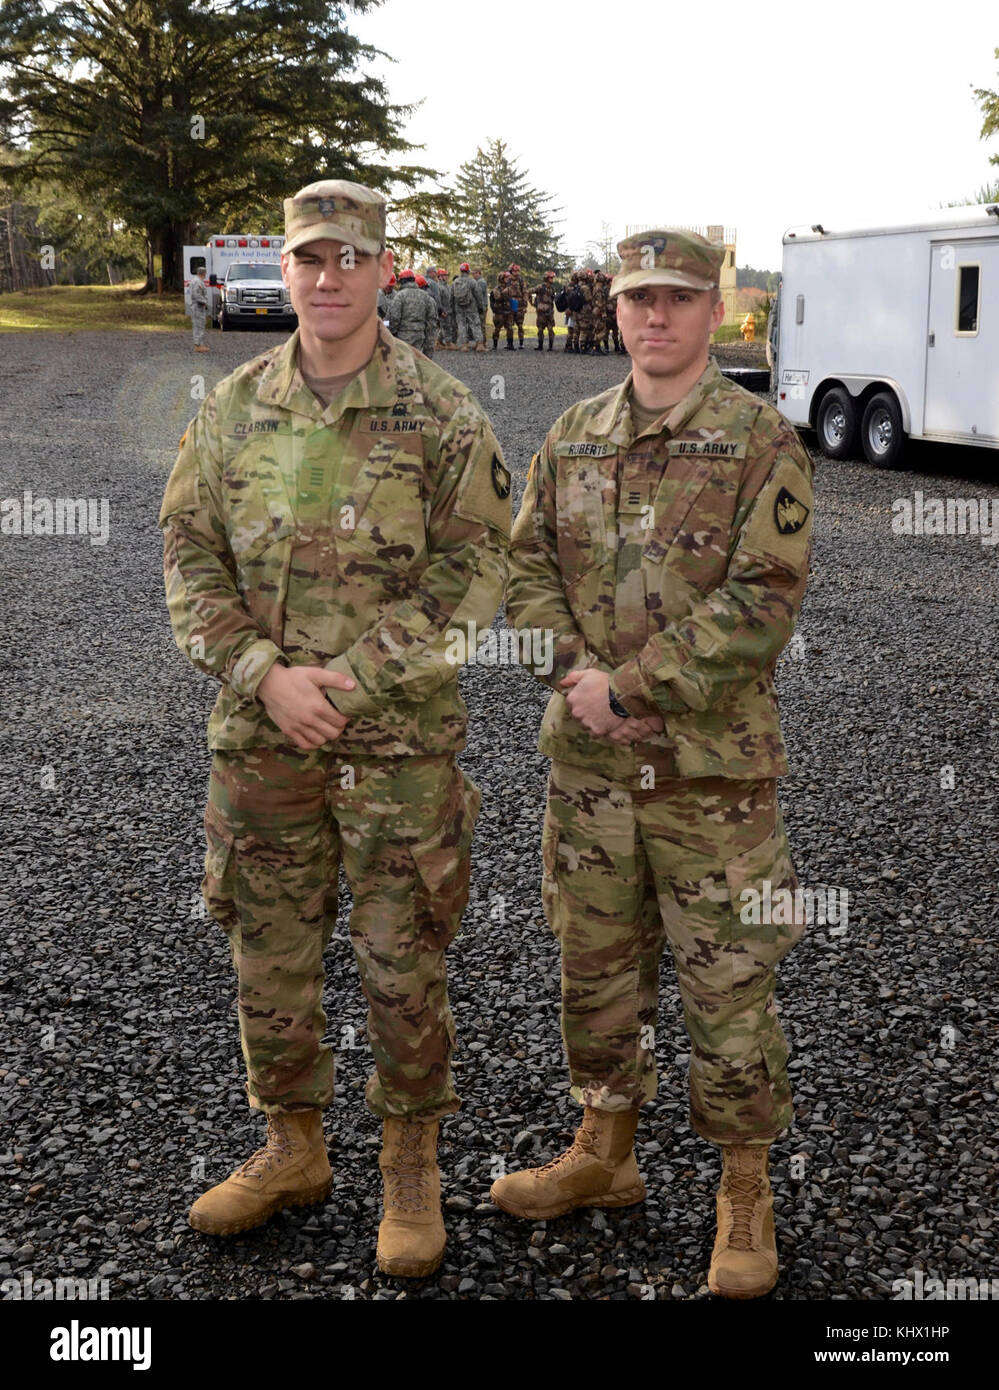 West Point Cadets Christopher Clarkin (left) and Jacob Roberts, Chinese language majors, participate in the 13th - Stock Image